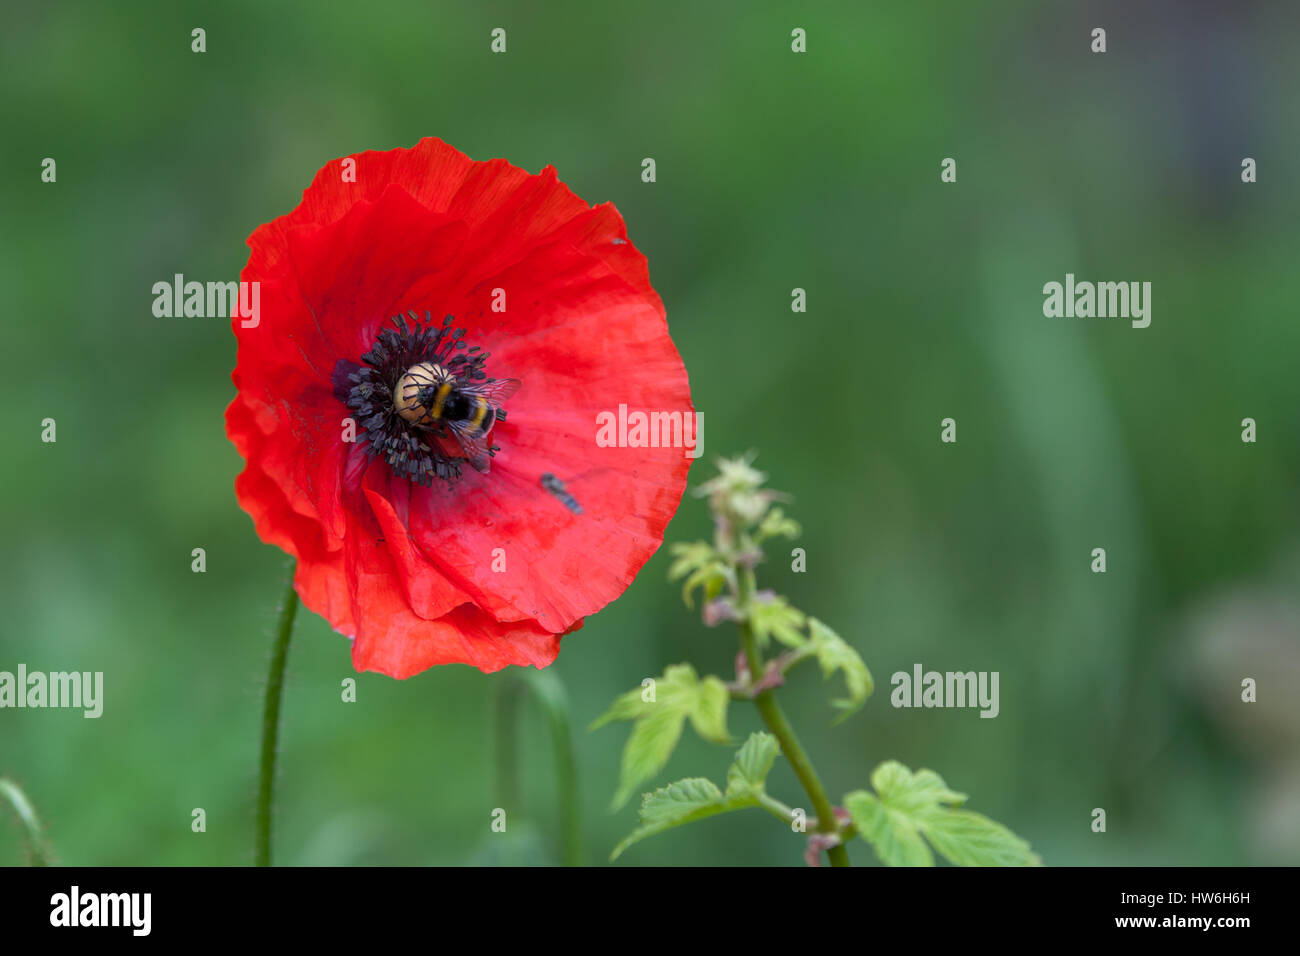 Bumble bee on red poppy in green background stock photo royalty bumble bee on red poppy in green background biocorpaavc